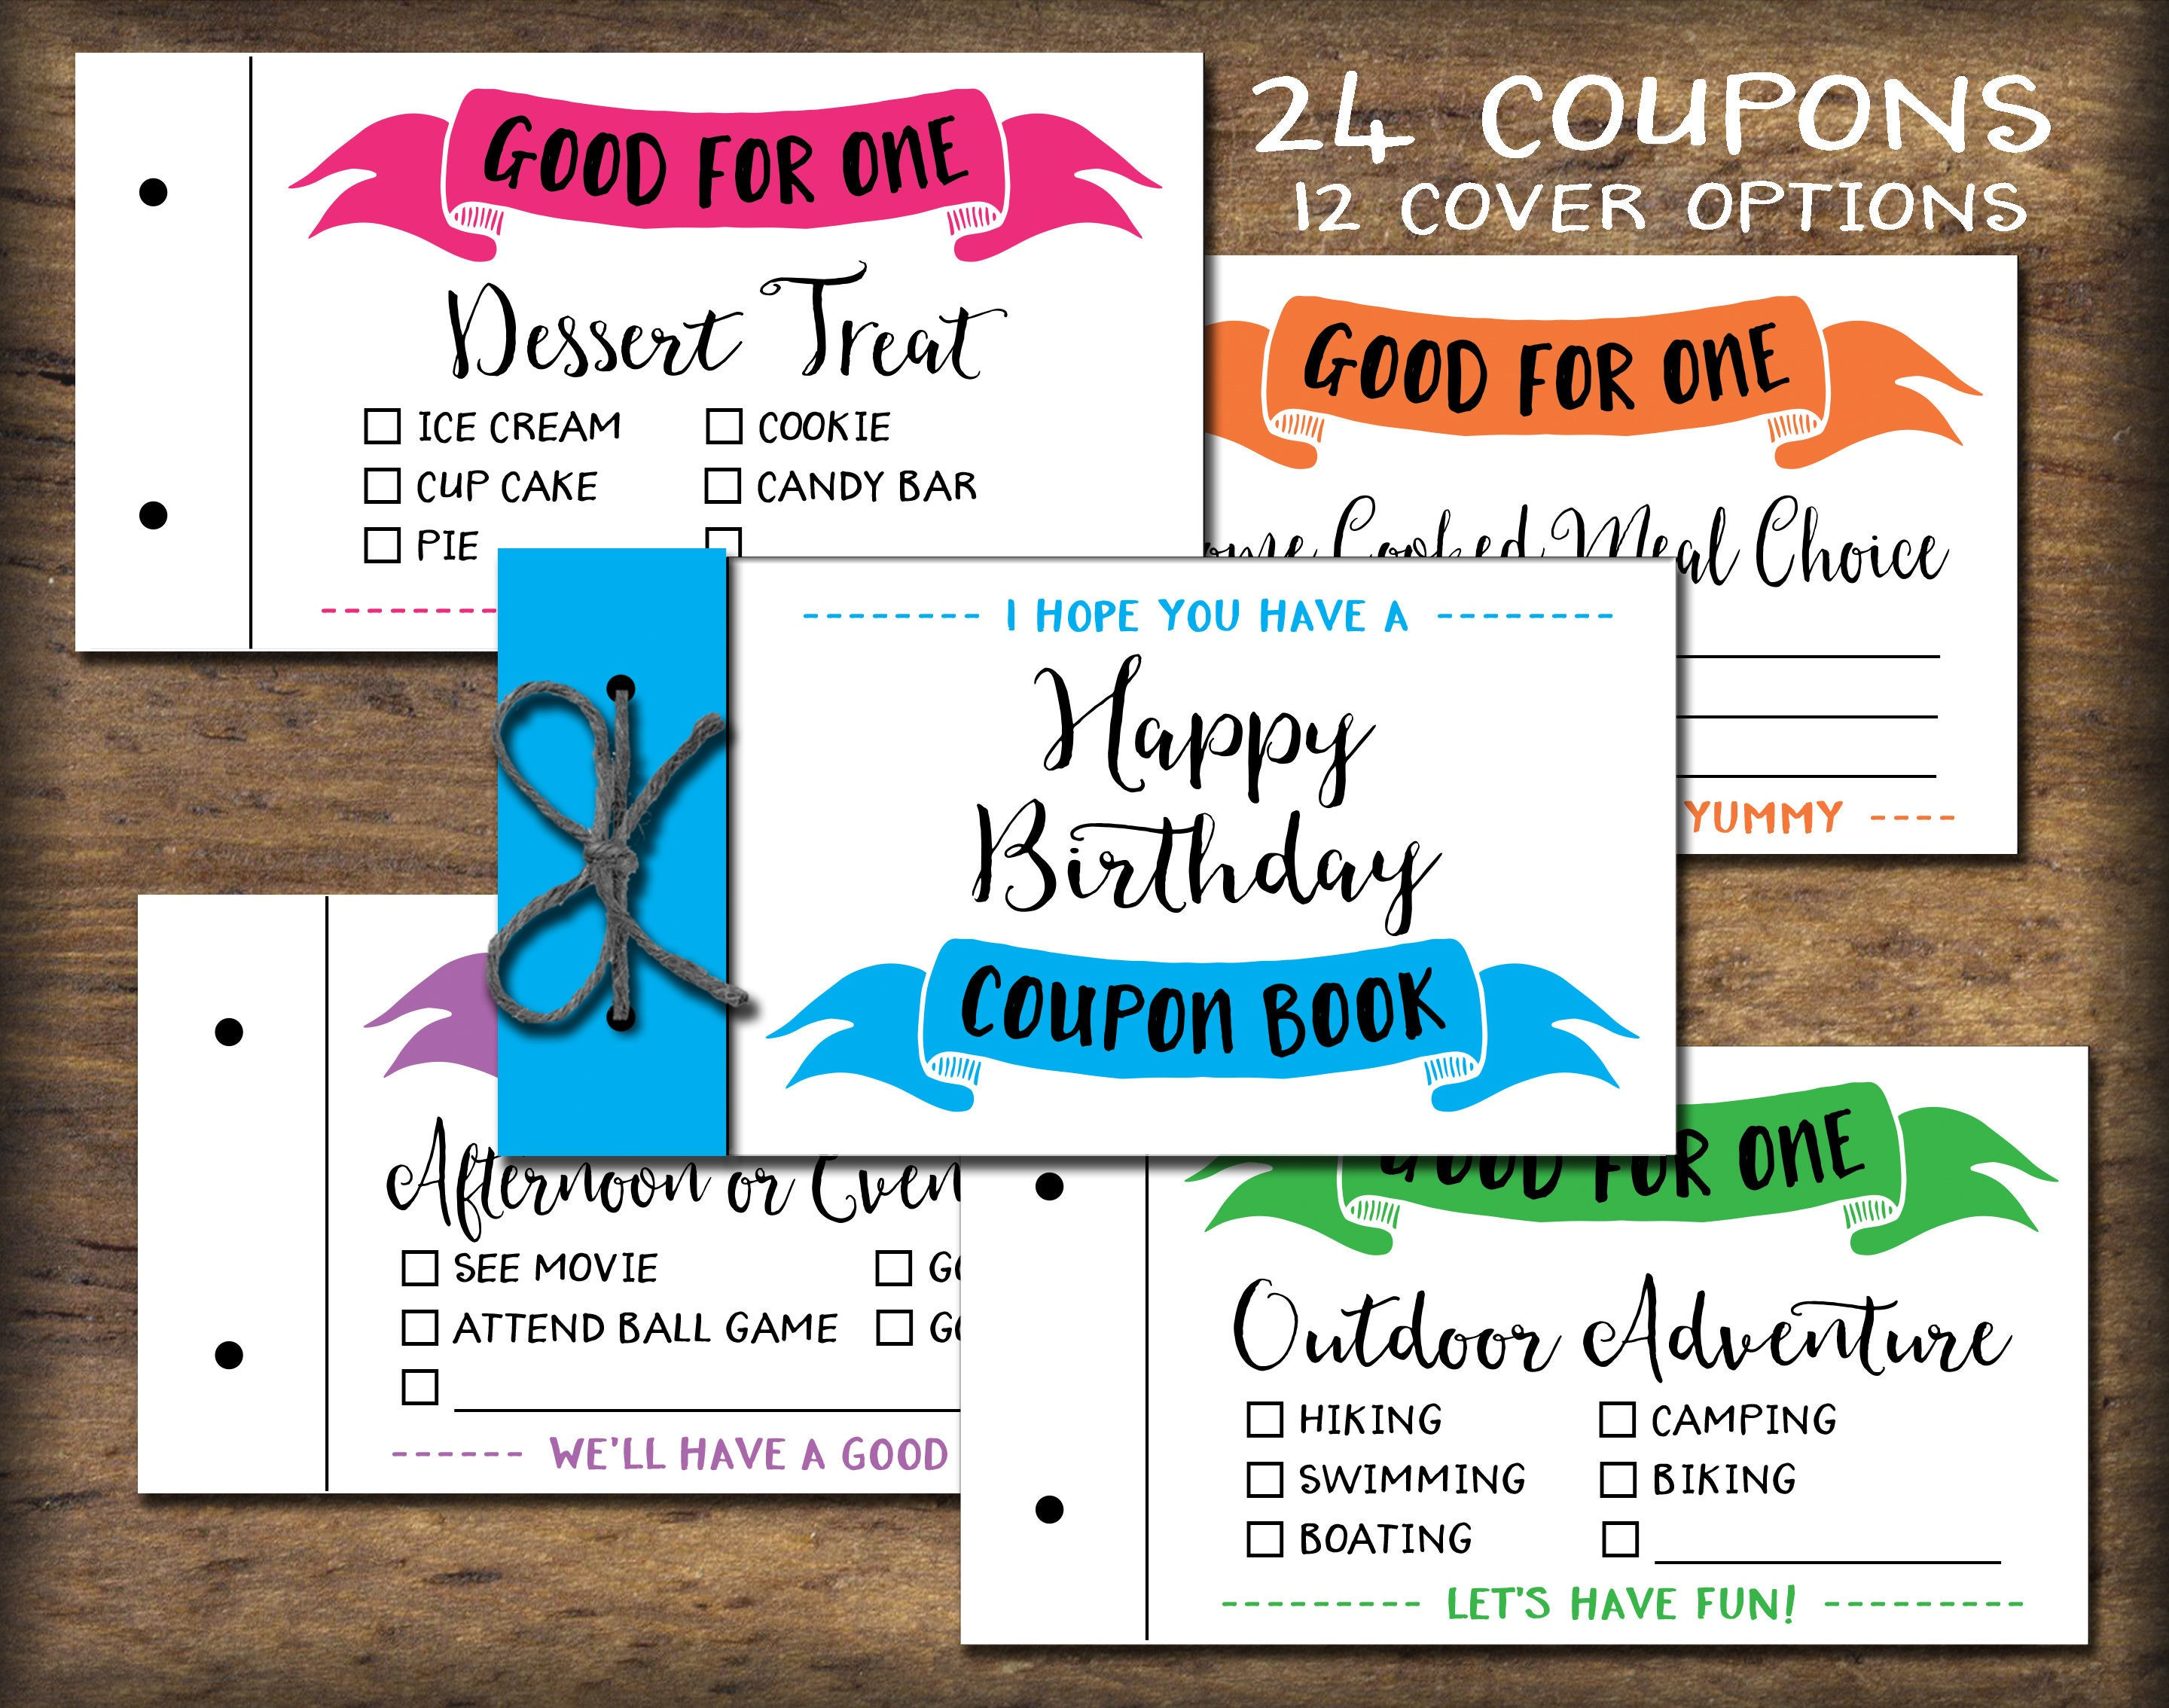 This is a picture of Crafty Printable Coupons for Kids